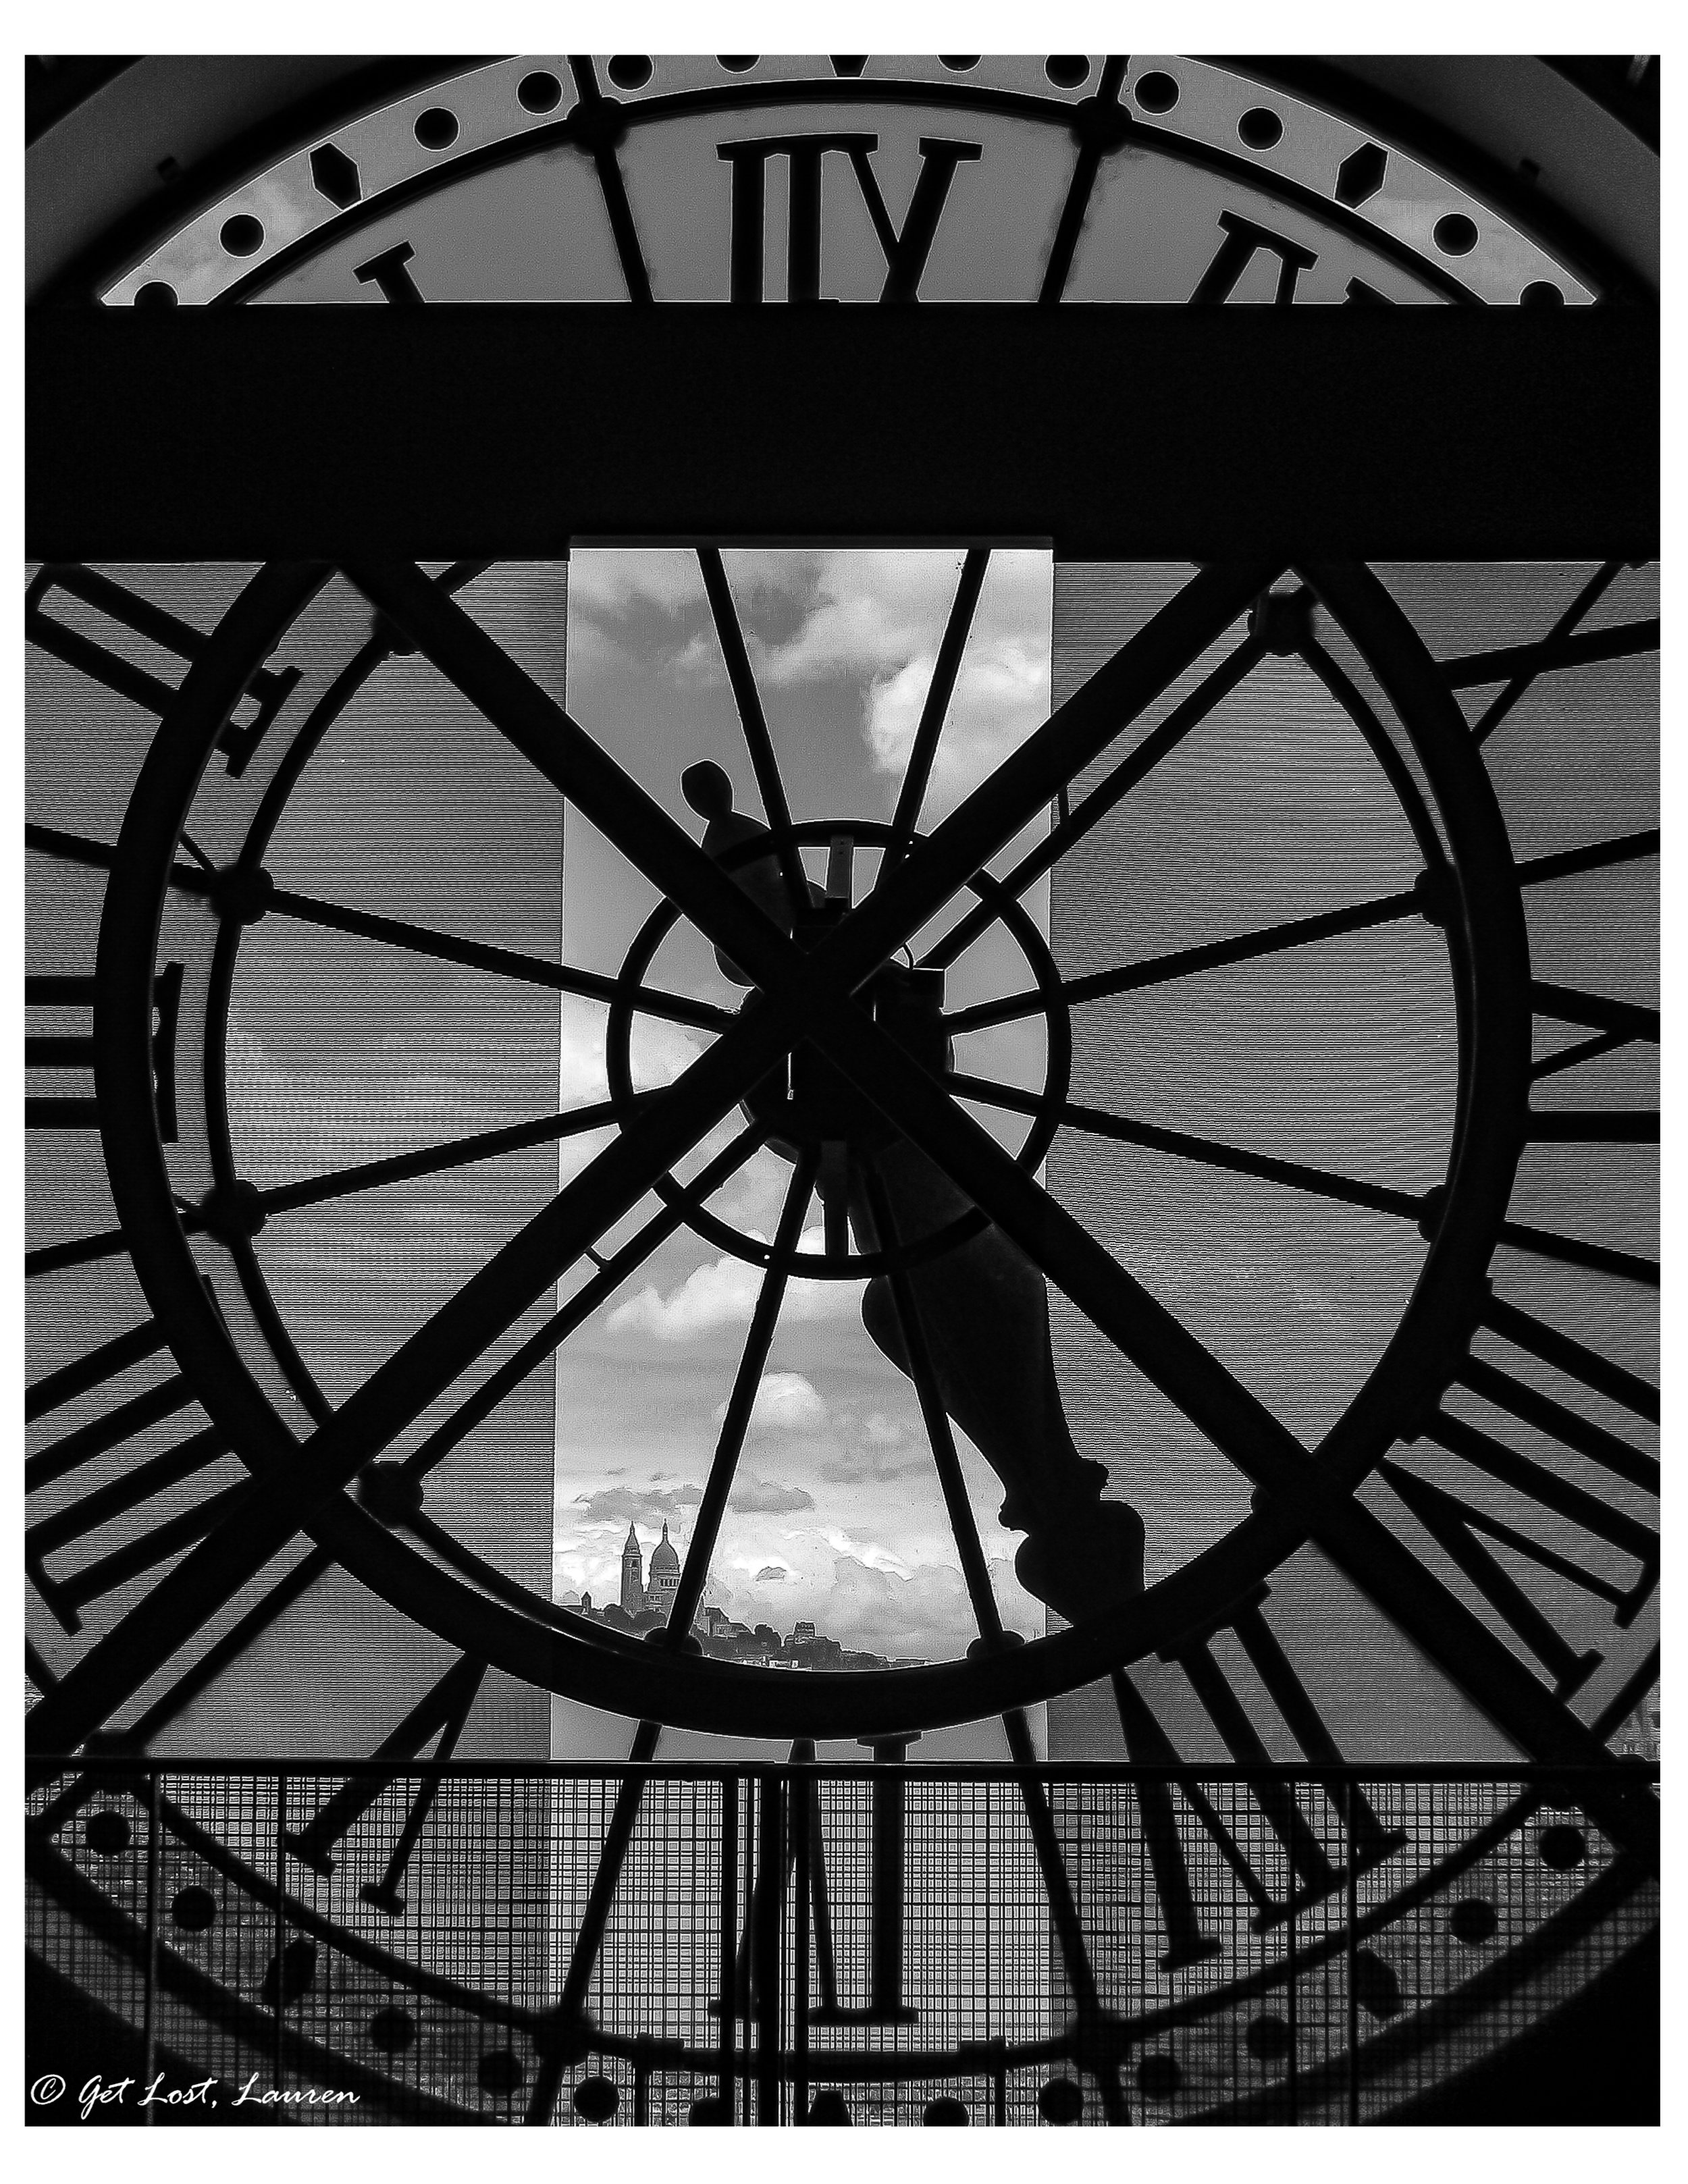 The Sacre Coeur peeking through the clock at the Orsay.